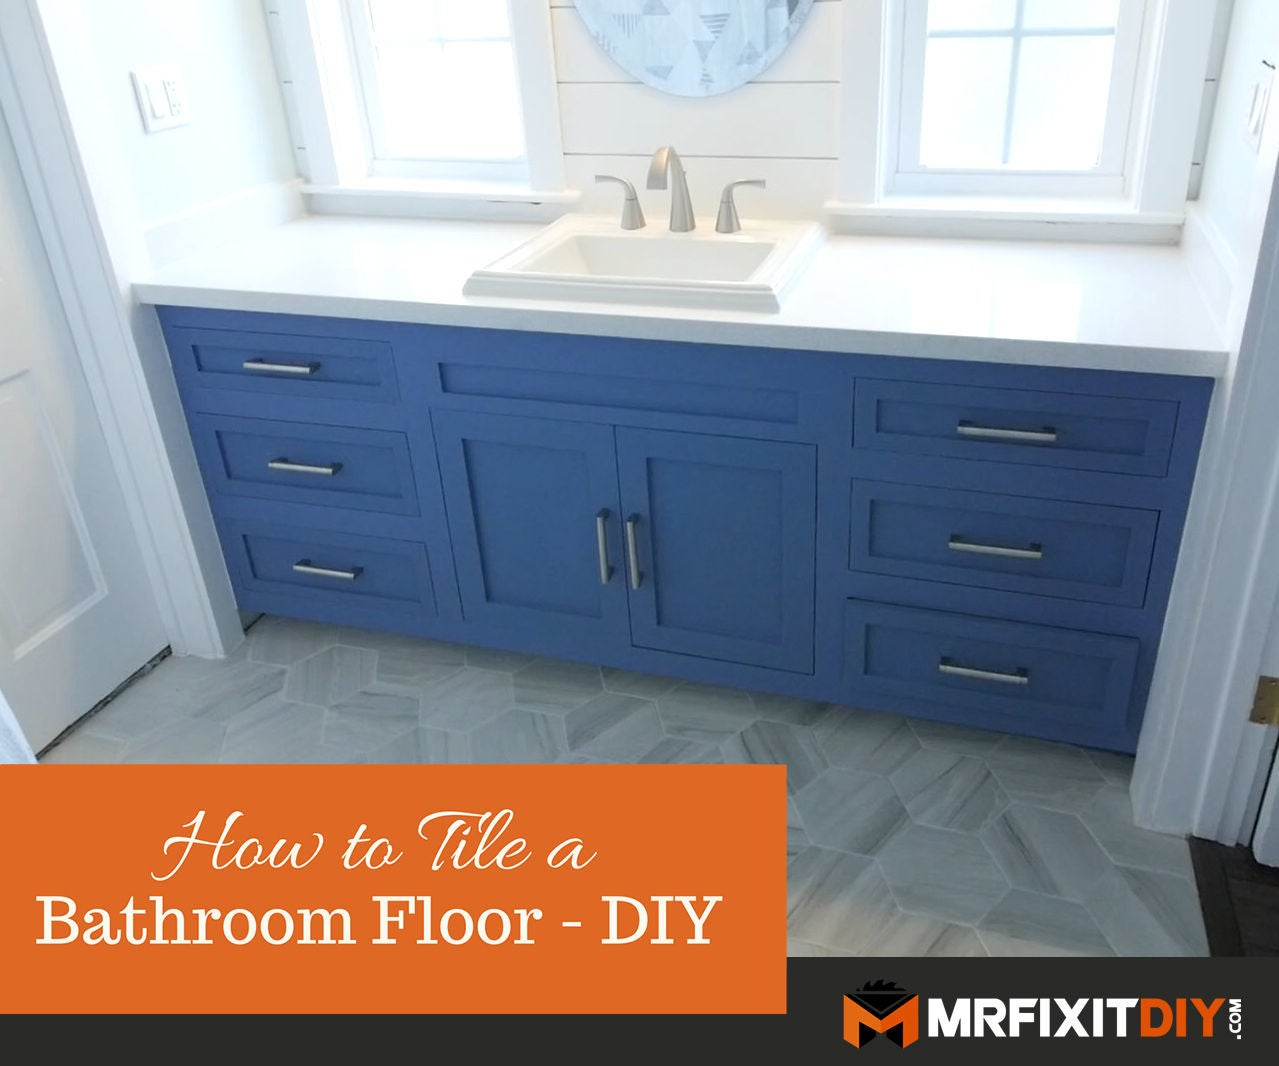 How to Tile a Bathroom Floor: 5 Steps (with Pictures)